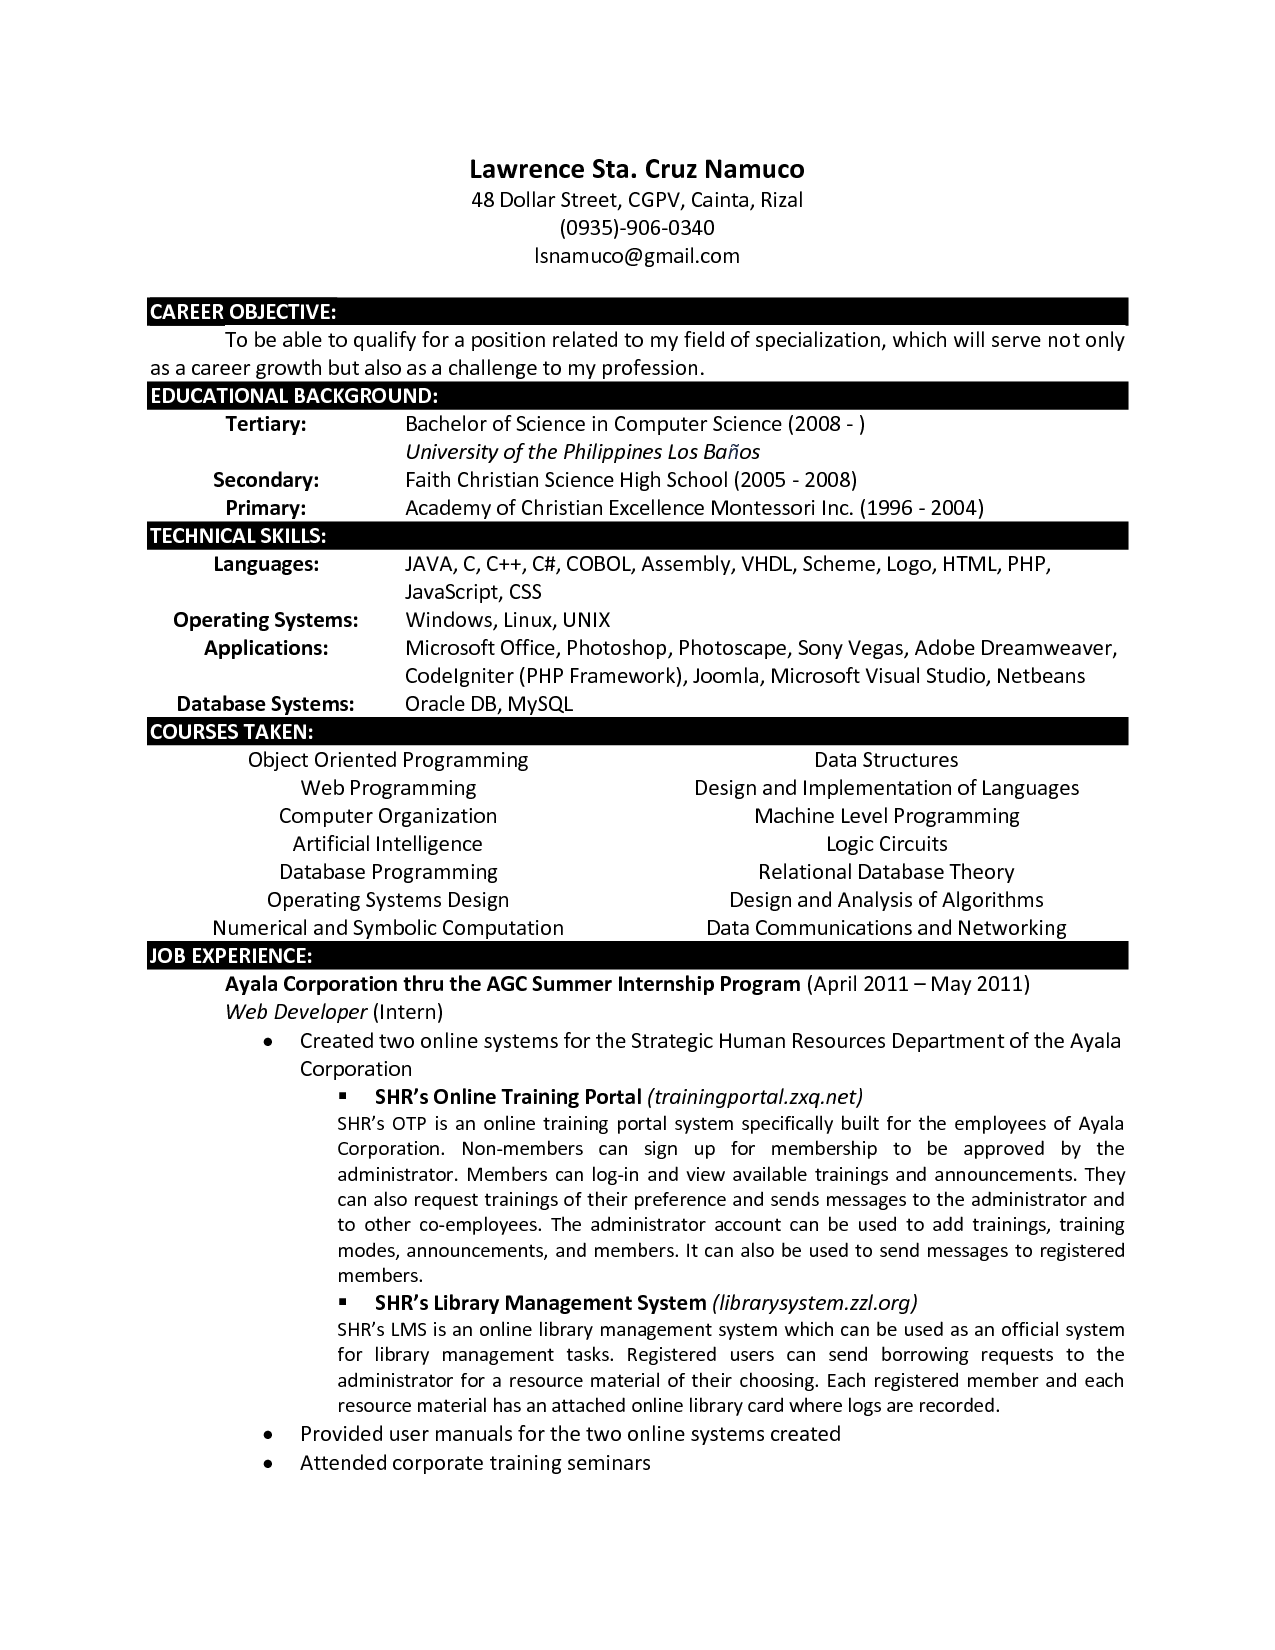 Sample Resume For Experienced Lecturer In Computer Science Computer Science Resume Templates Http Www